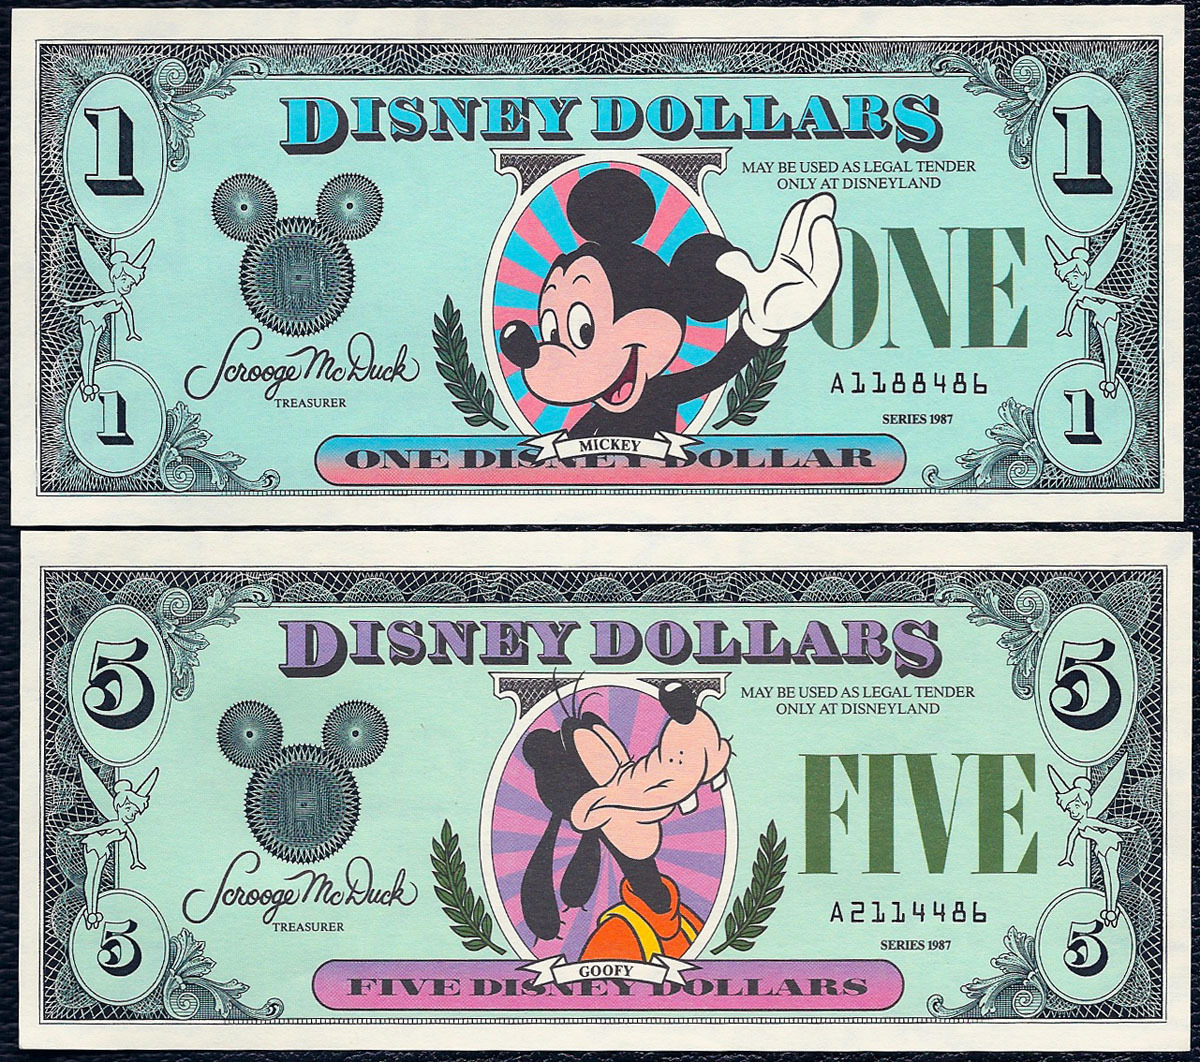 Disney Dollars were released in 1987; the first series was the A series released at Walt Disney World and Disneyland. Disney printed 870,000 of the original series for the May 5, 1987 release at both parks.